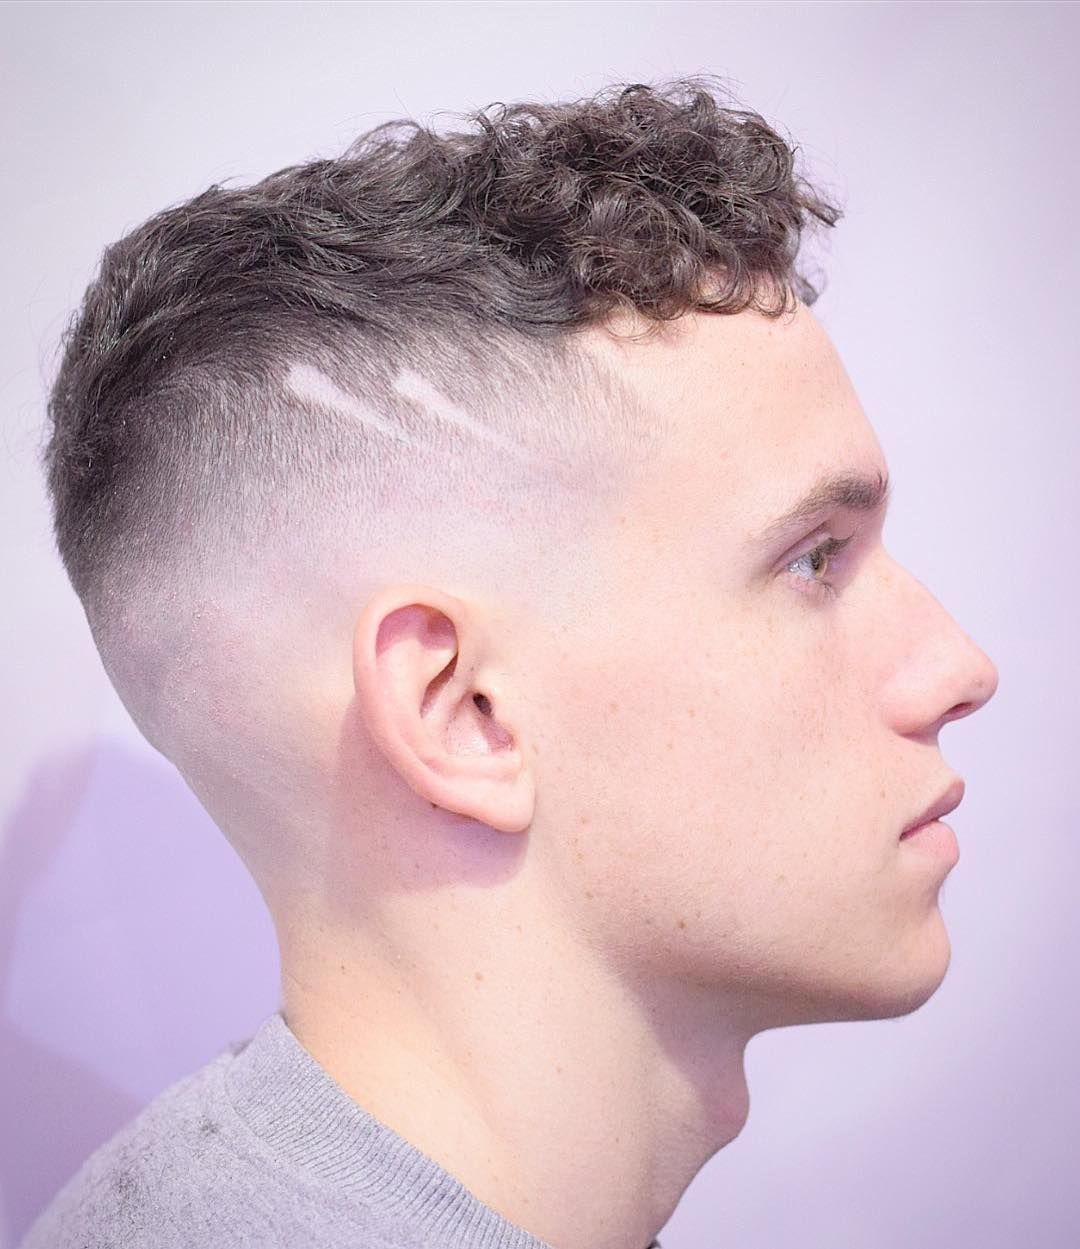 Cool Haircuts With Shaved Sides Menshairstyle Pinterest Shaved